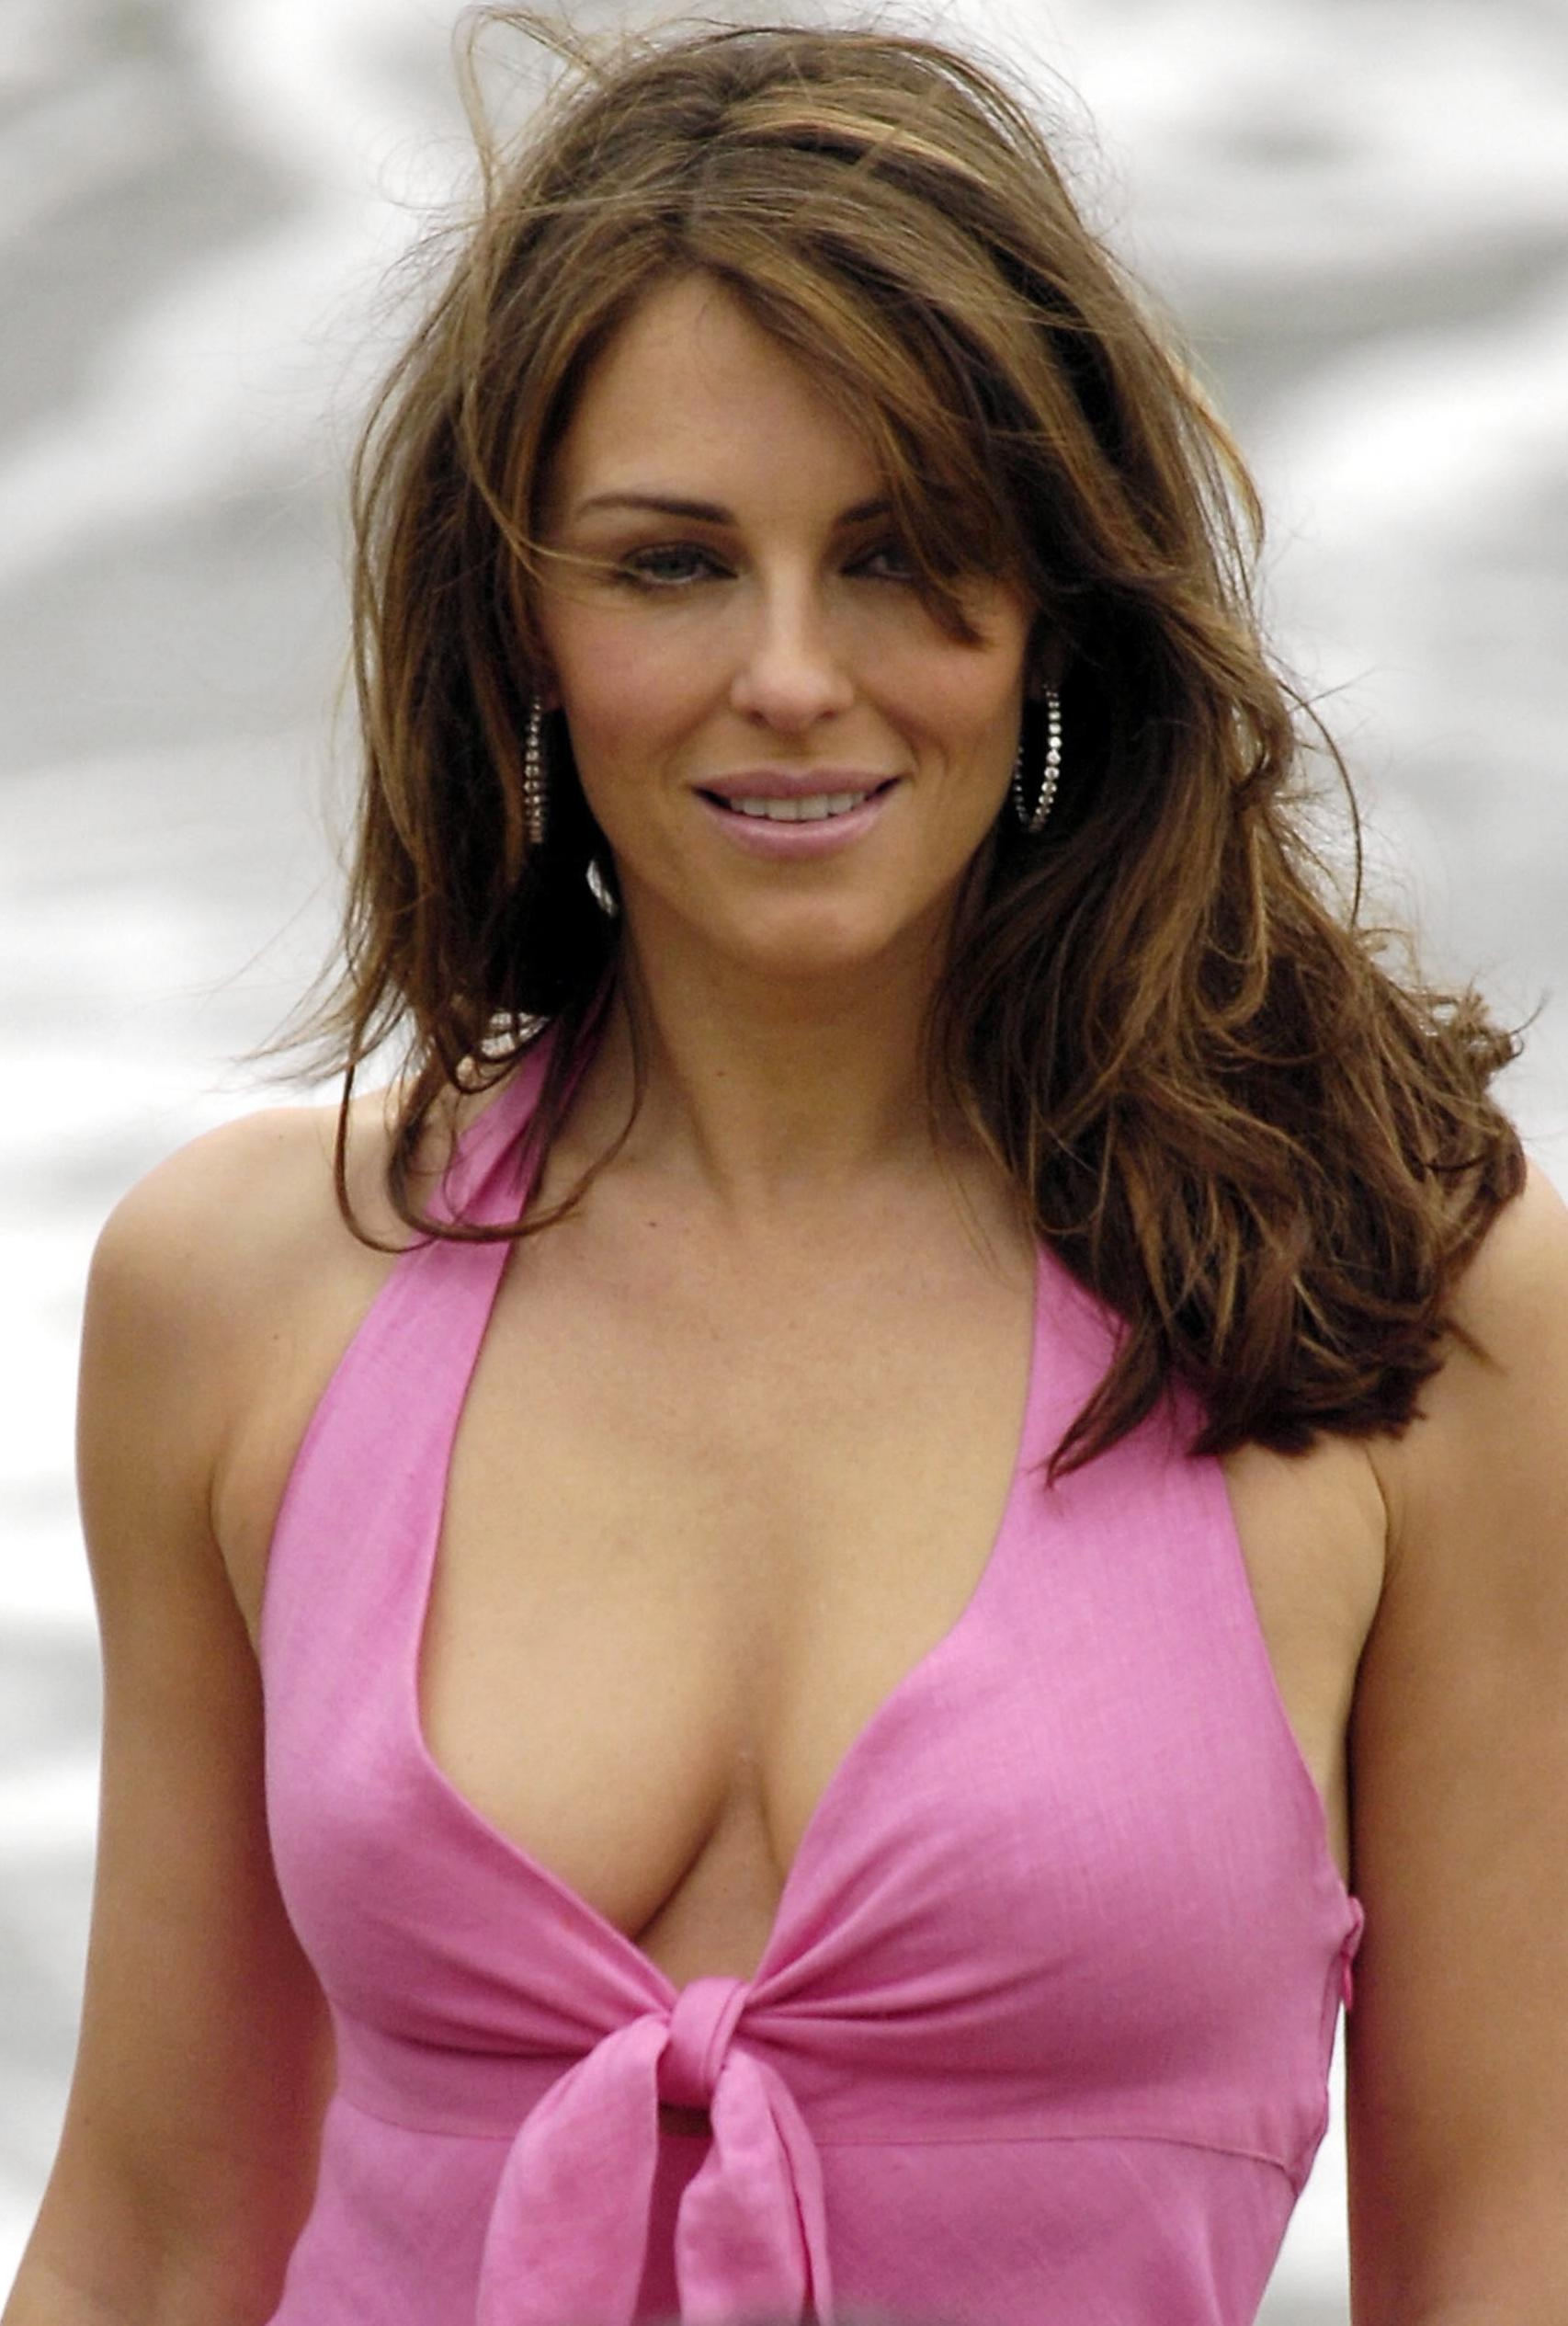 elizabeth hurley photo 245 of 735 pics wallpaper photo 209556 theplace2. Black Bedroom Furniture Sets. Home Design Ideas